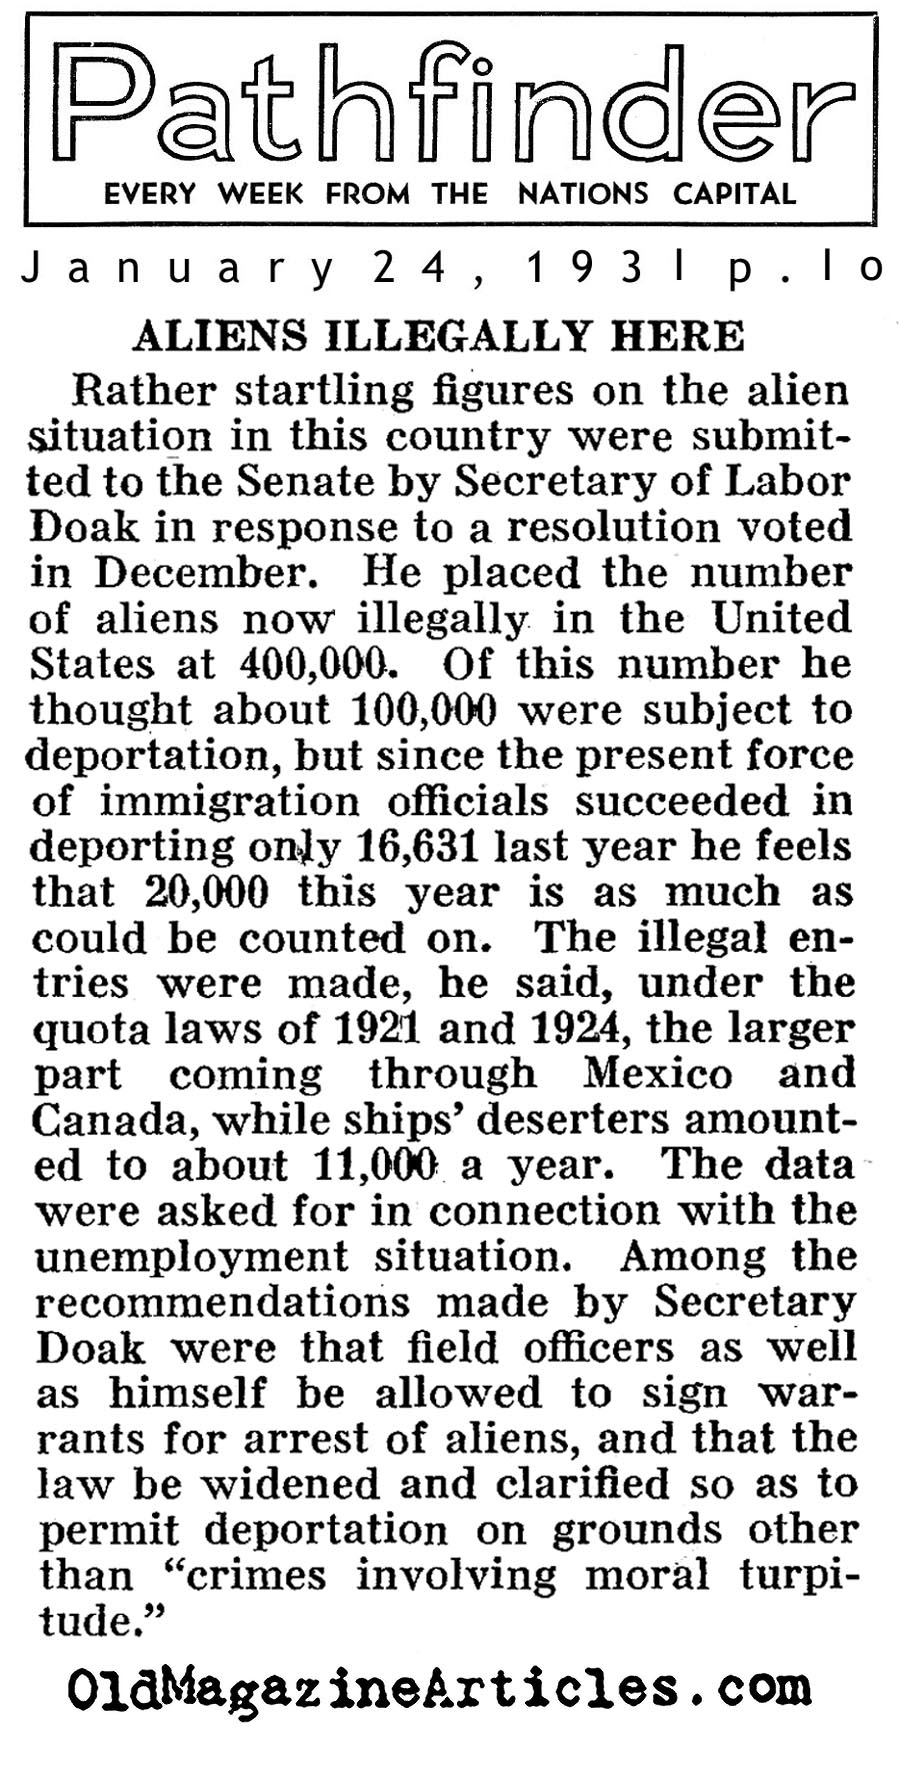 In The Country Illegally (Pathfinder Magazine, 1931)